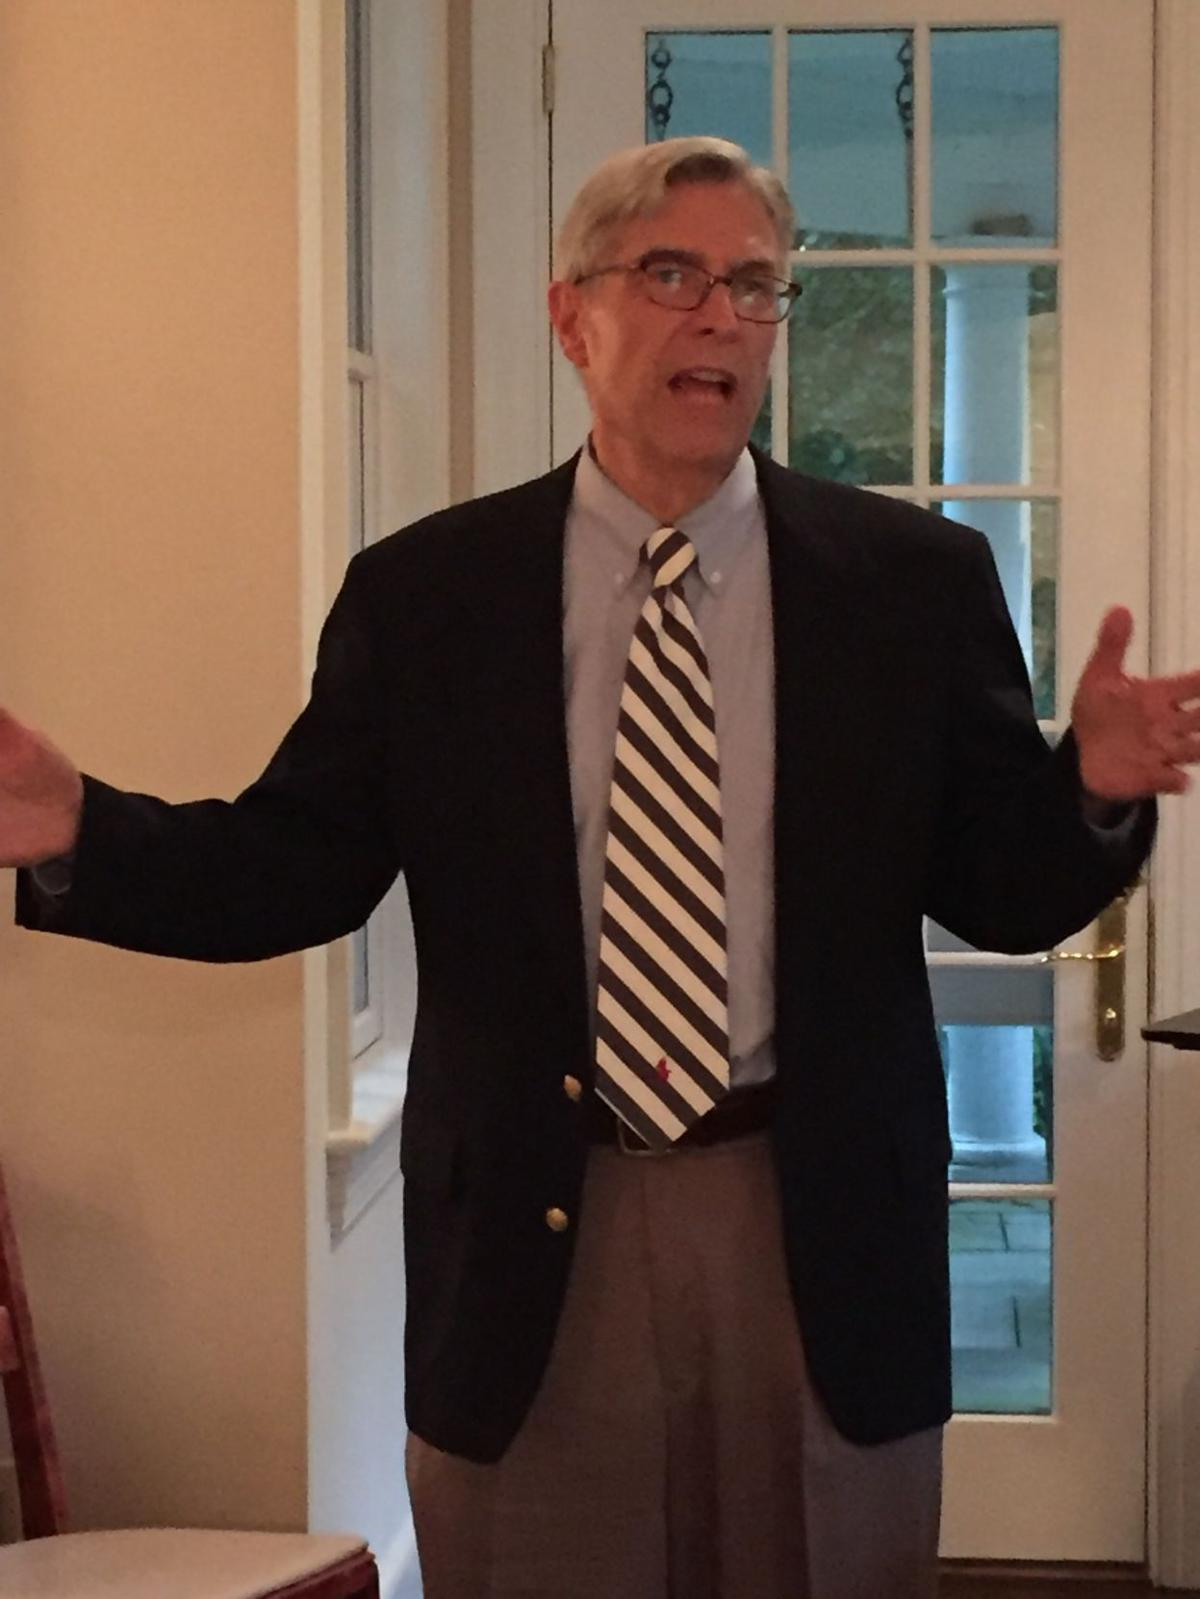 DEMOCRATIC ASSEMBLY CANDIDATE TOM MORAN